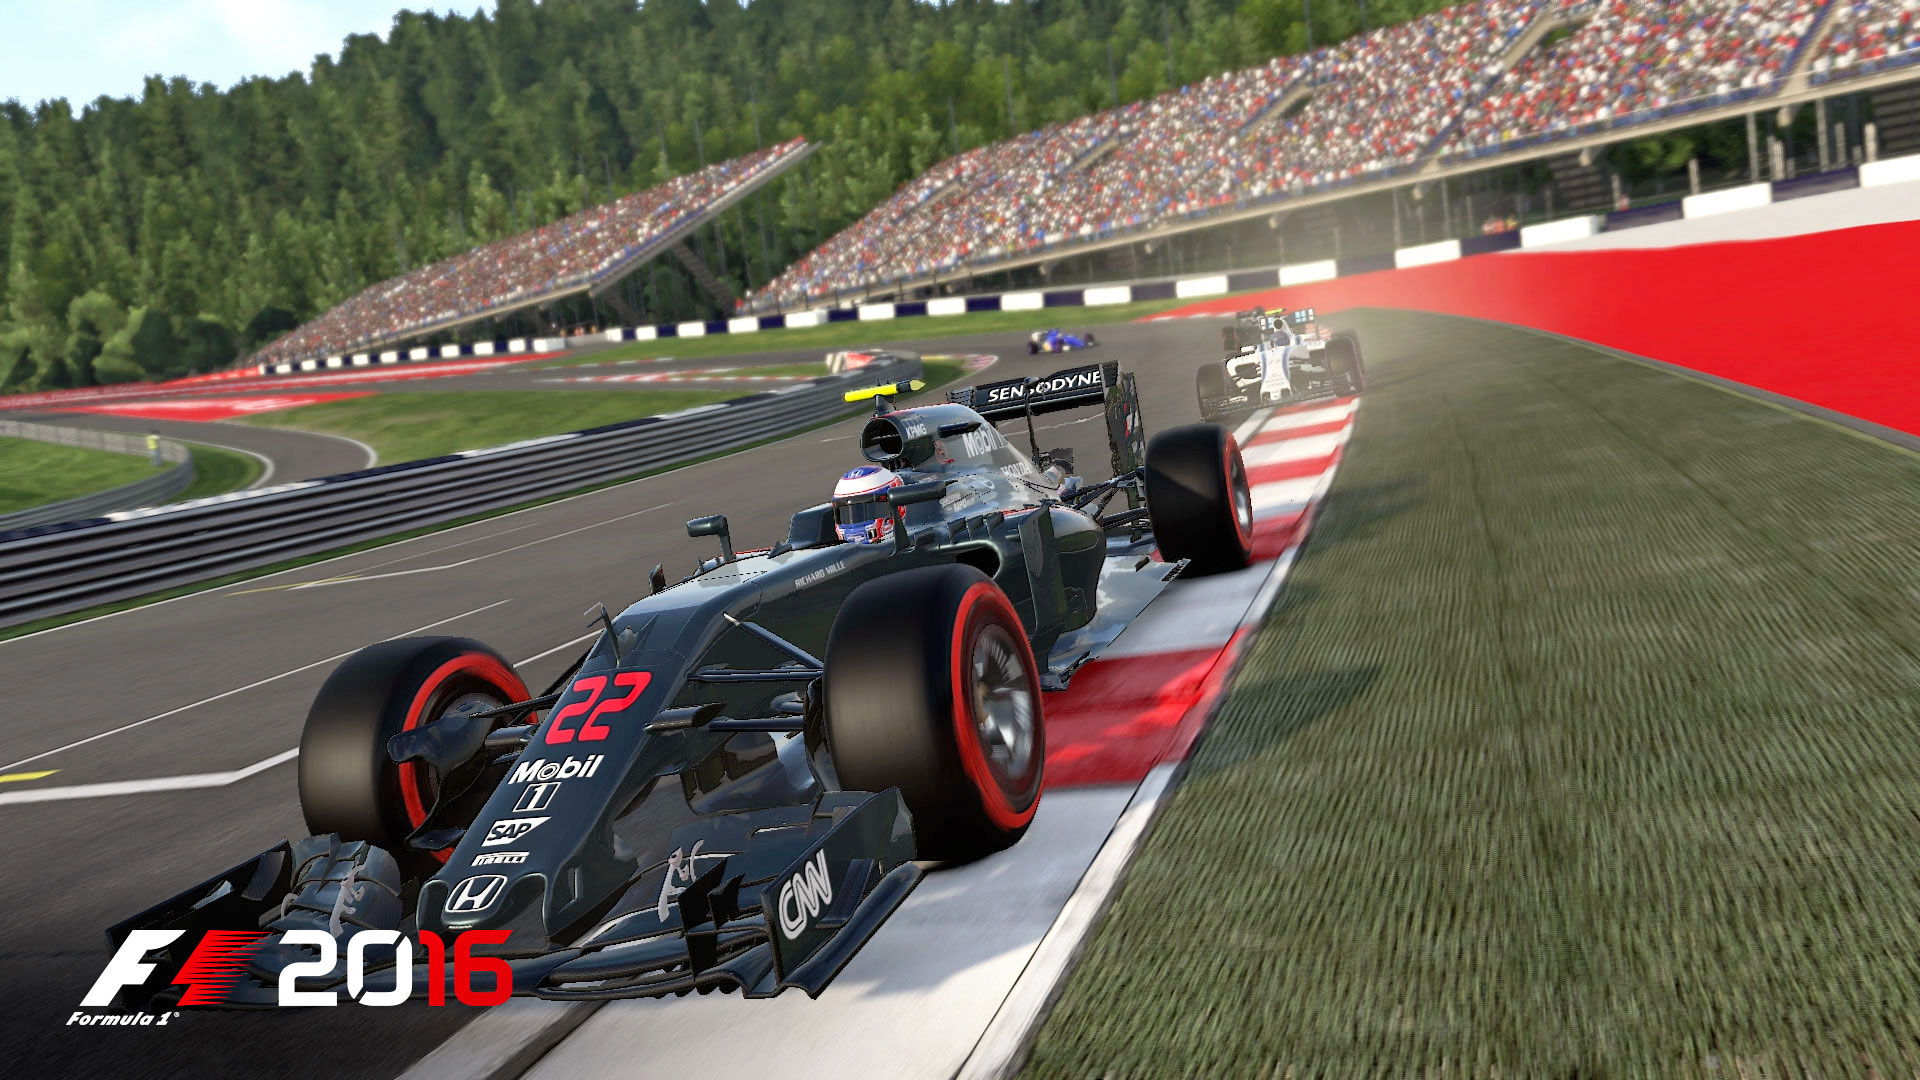 39 f1 2016 39 gets 22 player support for online multiplayer races. Black Bedroom Furniture Sets. Home Design Ideas